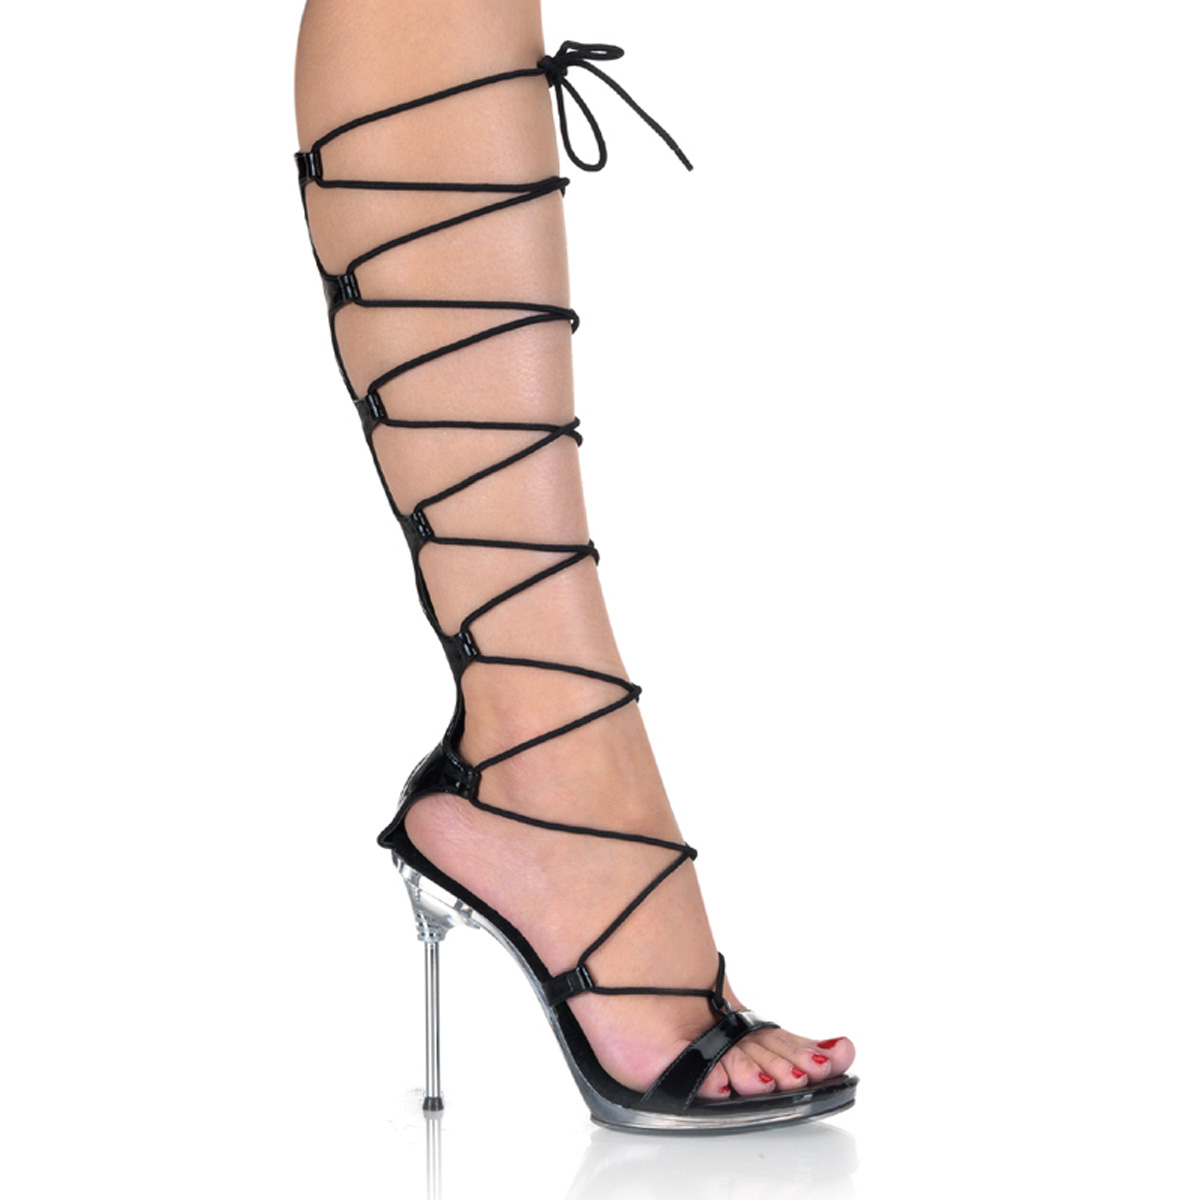 PLEASERs 4 1/2 inch Stiletto Heel Lace-Up Mini-Platform Sandal Black Patent /Clear at Sears.com